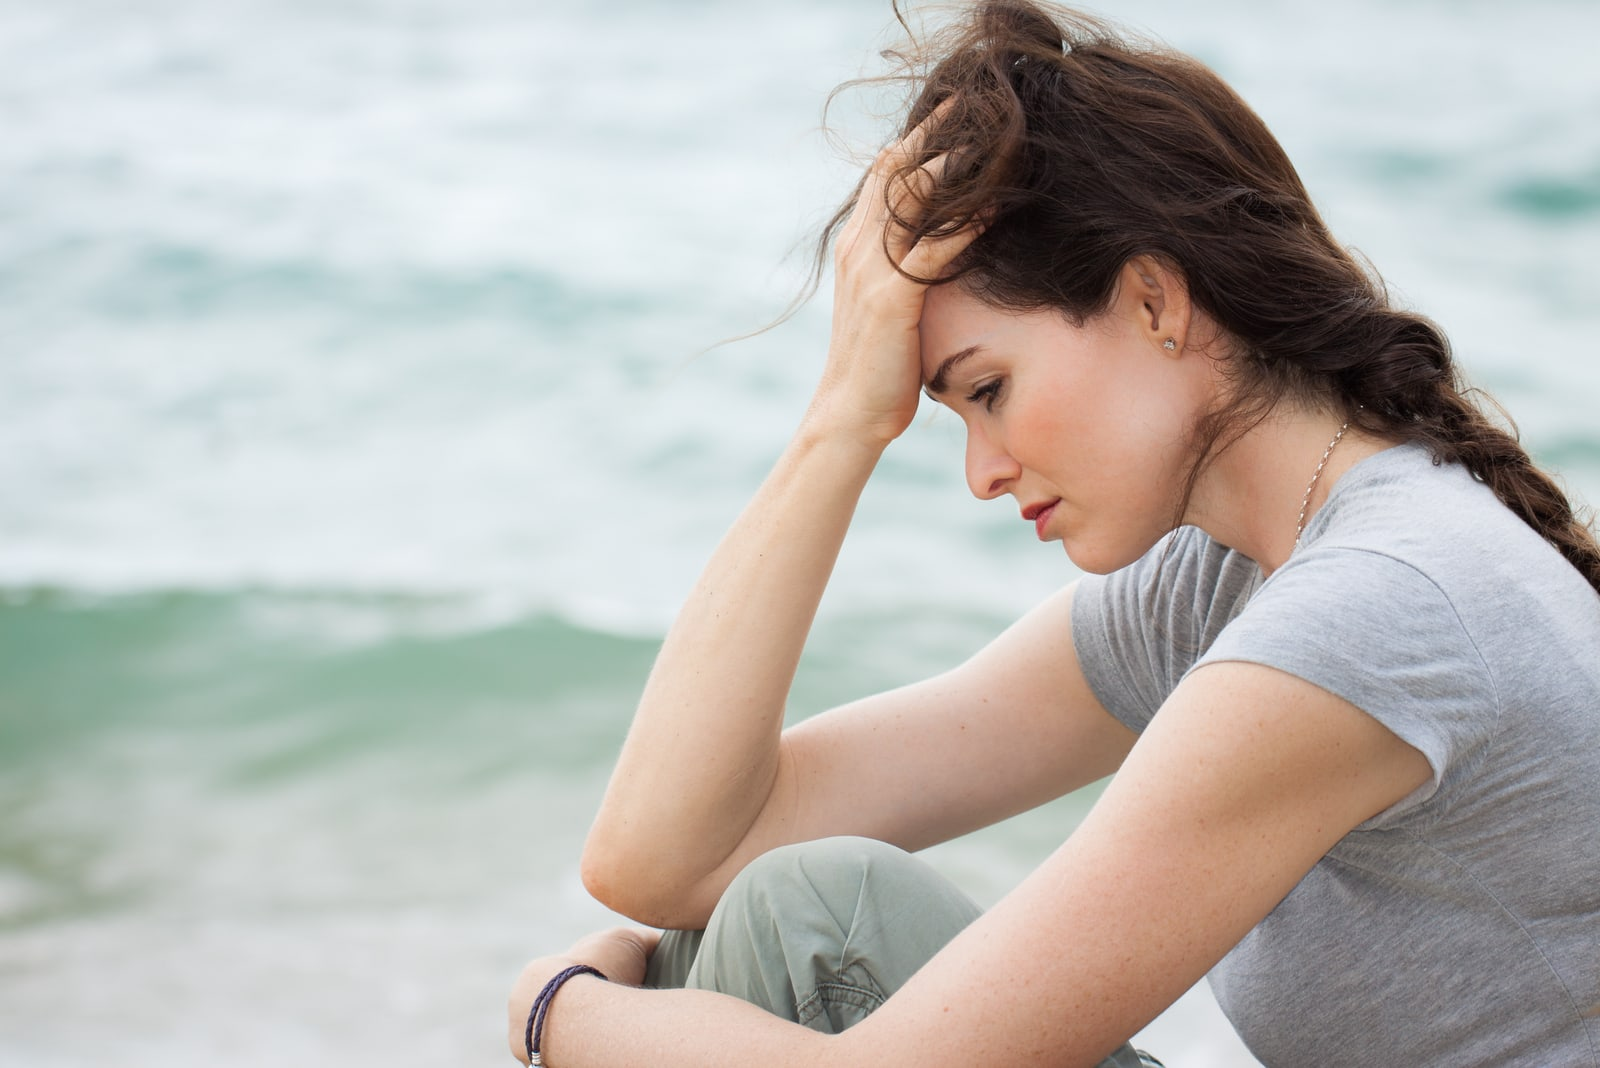 sad and worried woman sitting on the beach